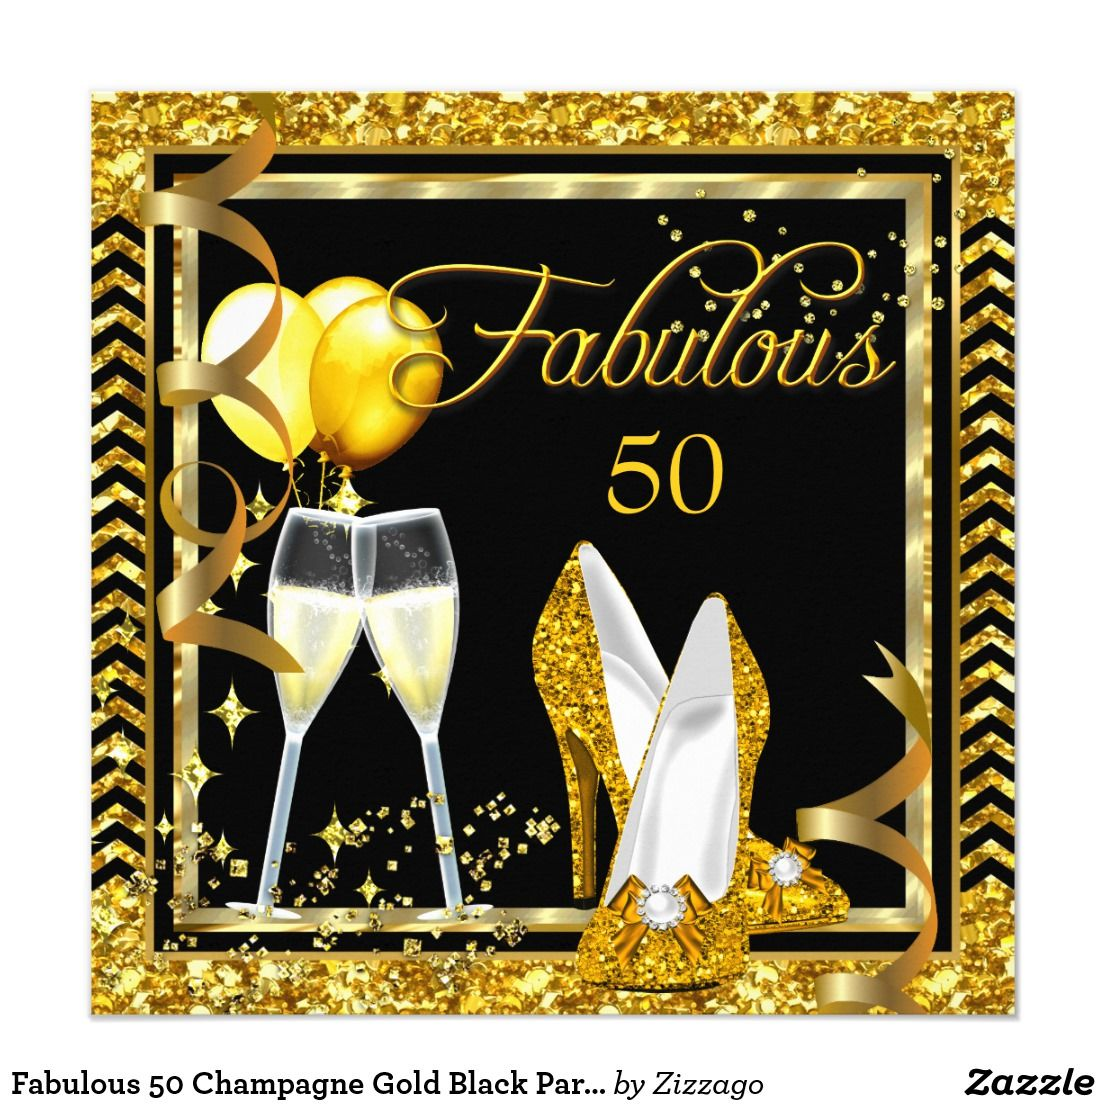 Fabulous 50 Champagne Gold Black Party Invite   Zazzle.com   50th birthday  cards for women, Black and gold invitations, Gold birthday party